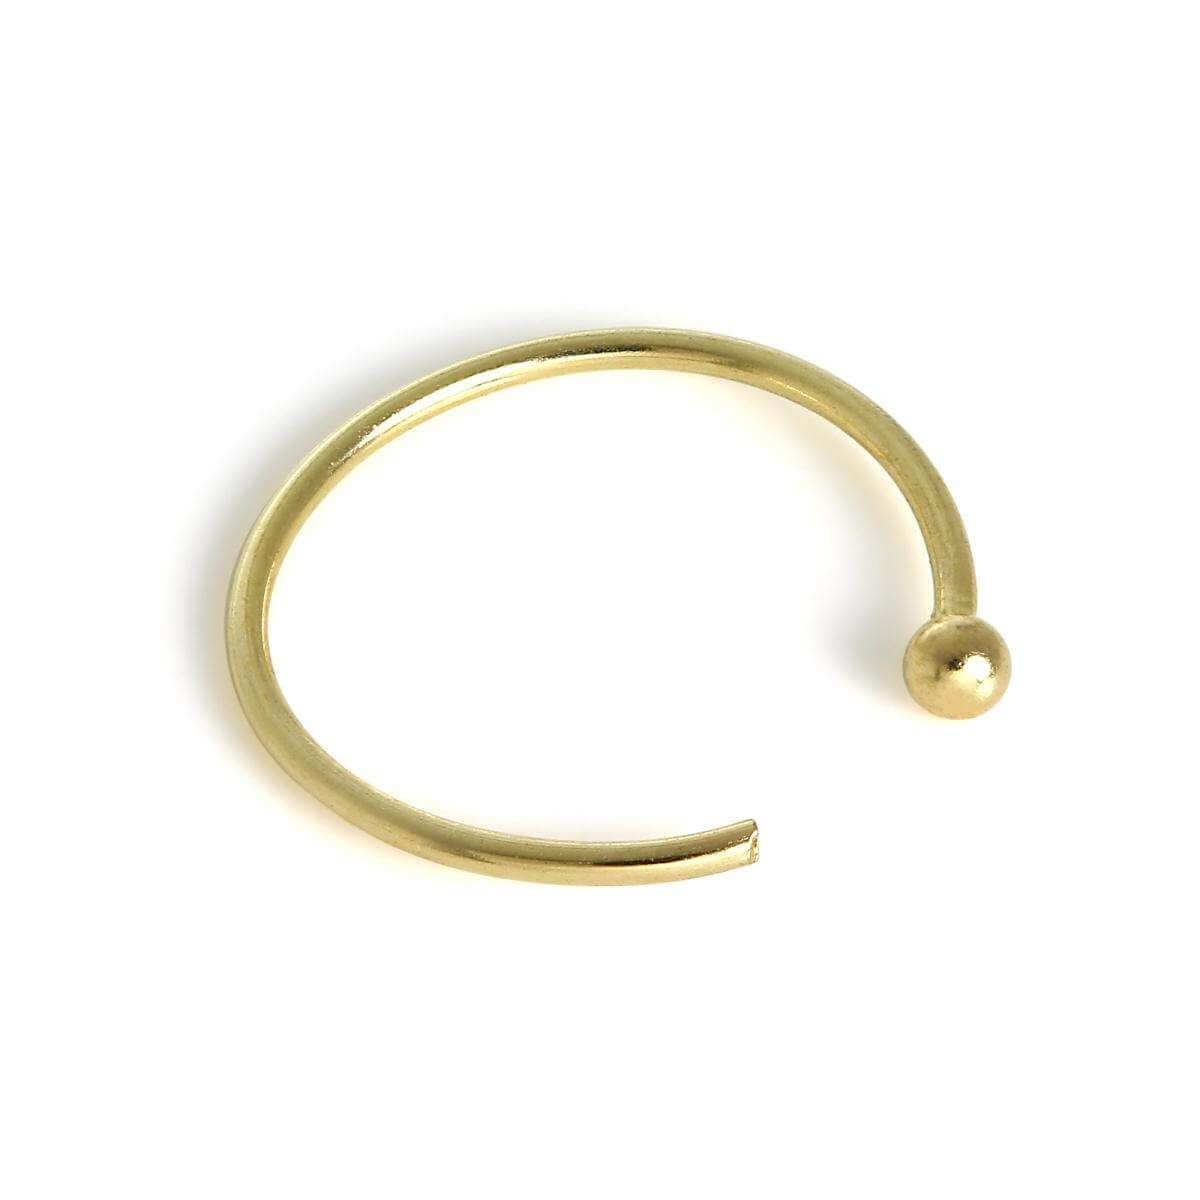 9ct Gold 1mm Ball End Open Nose Hoop Ring